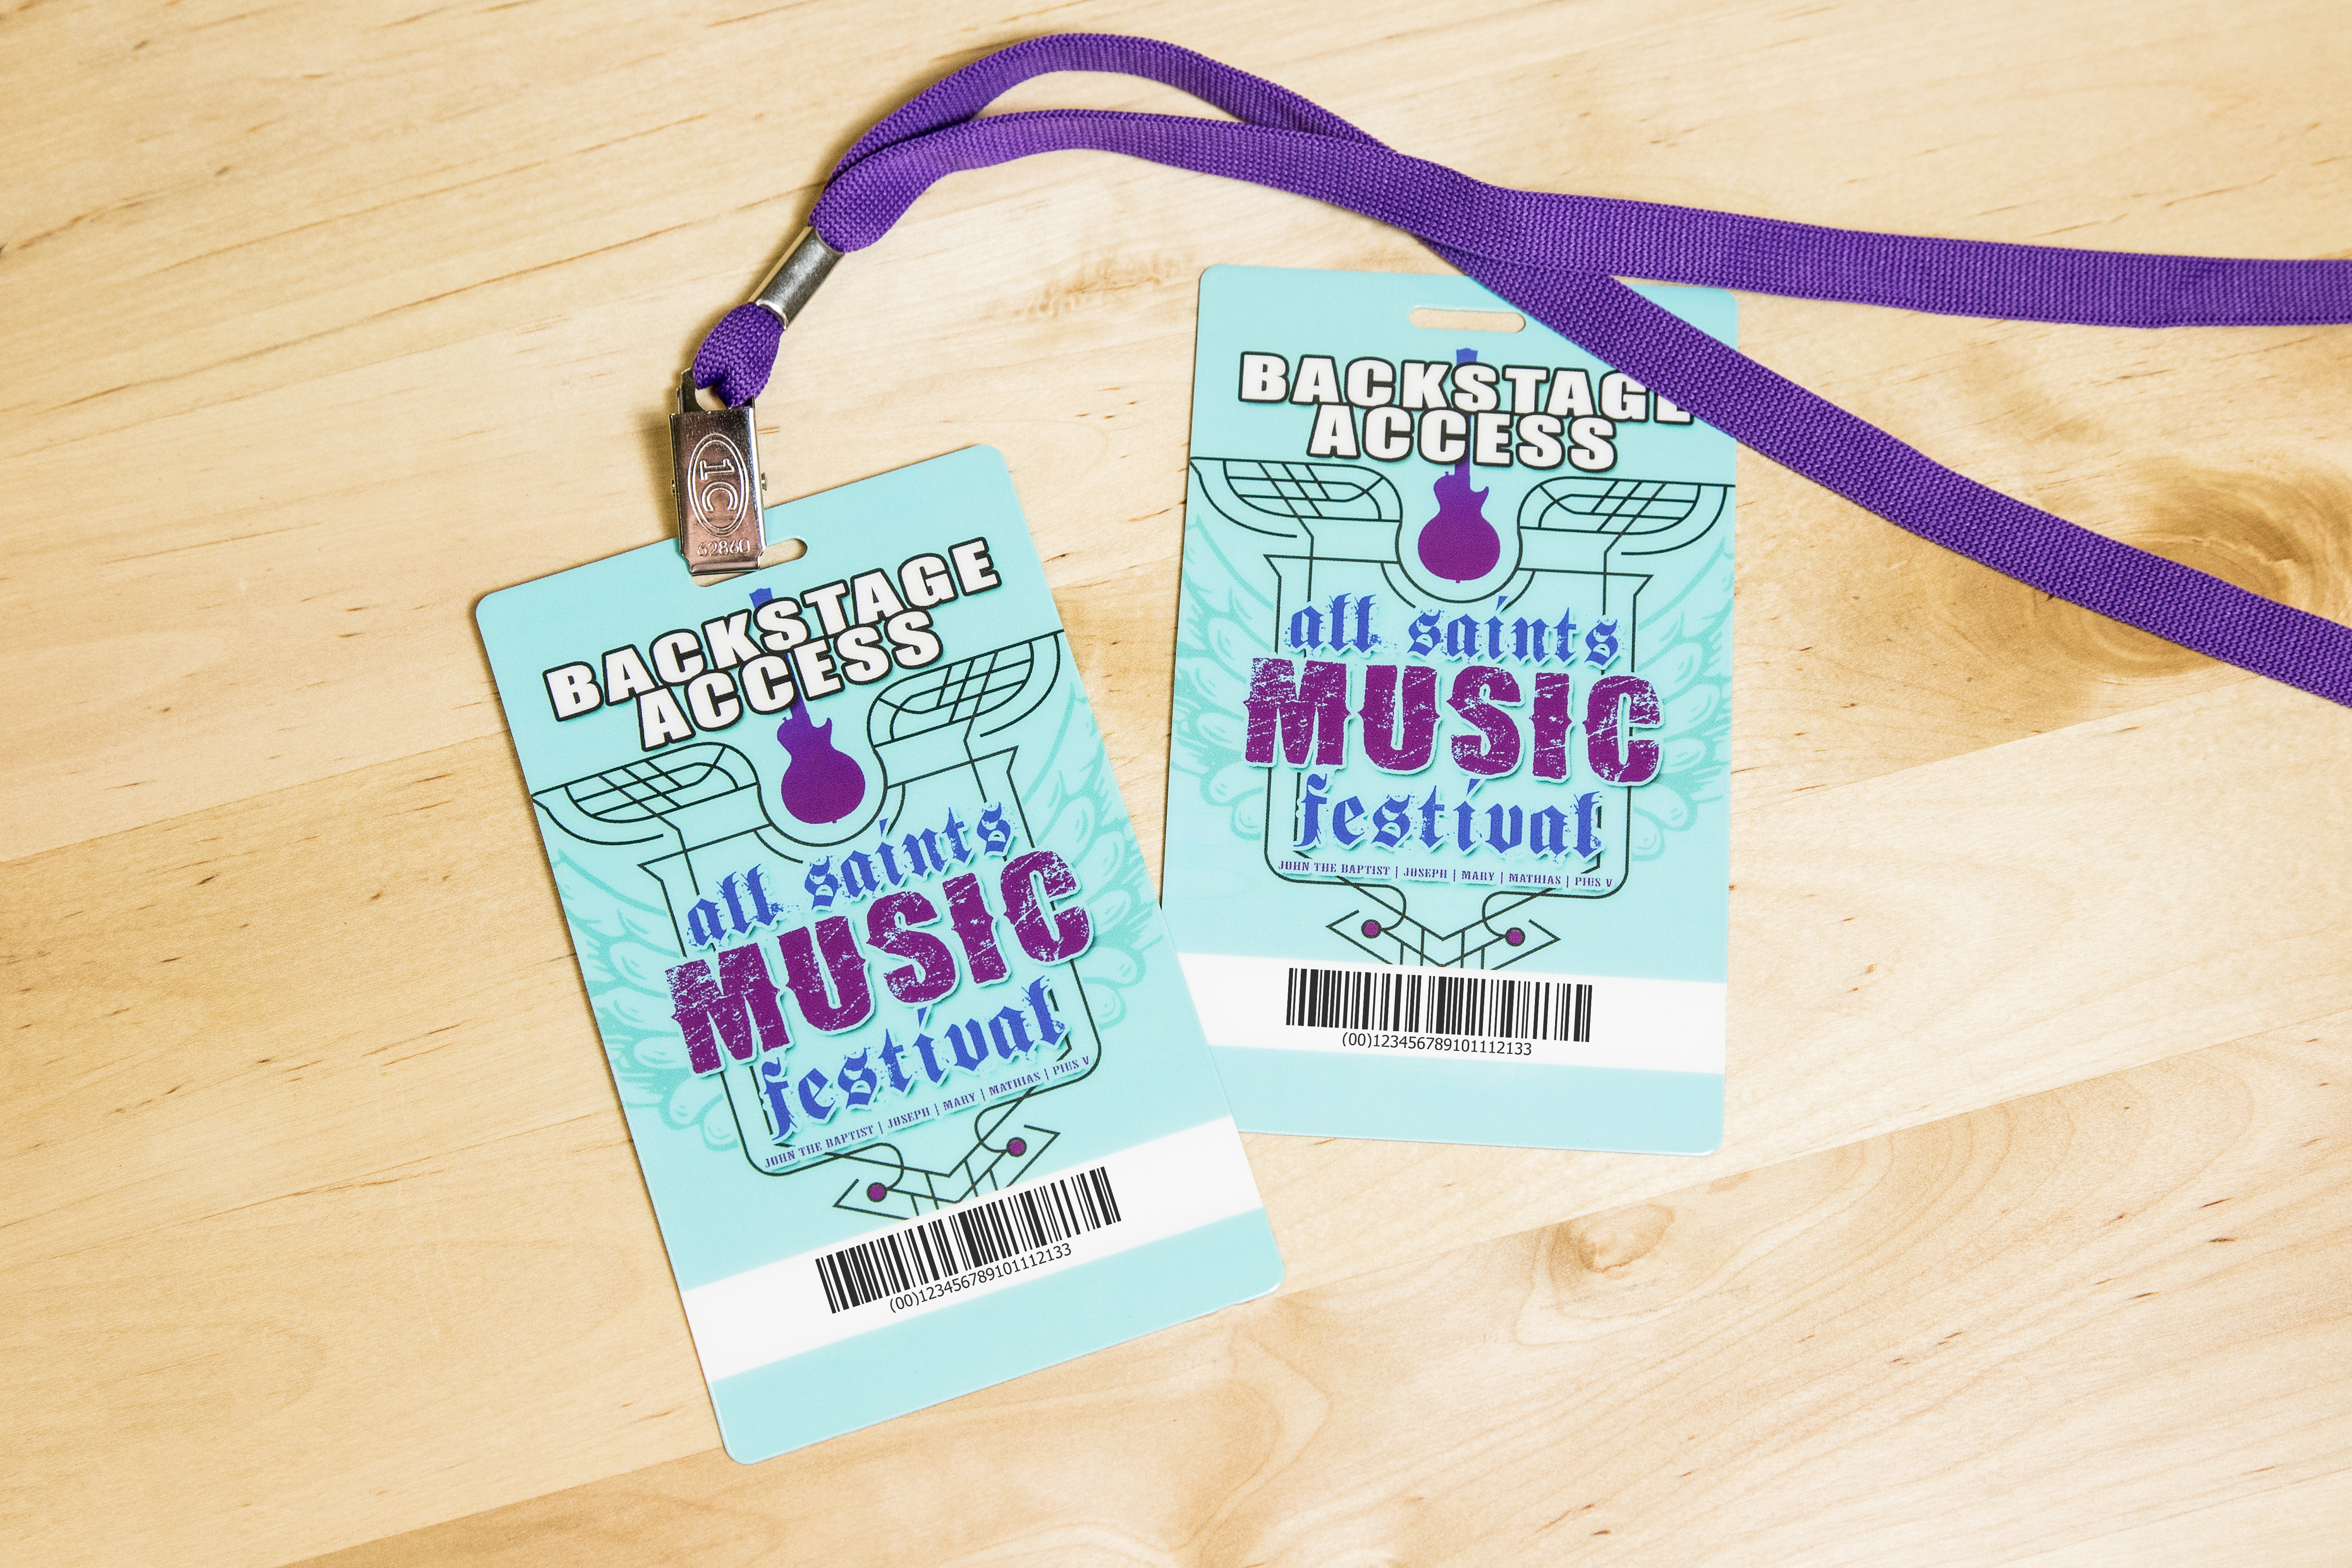 Backstage Pass for All Saints Music Festival with a Barcode